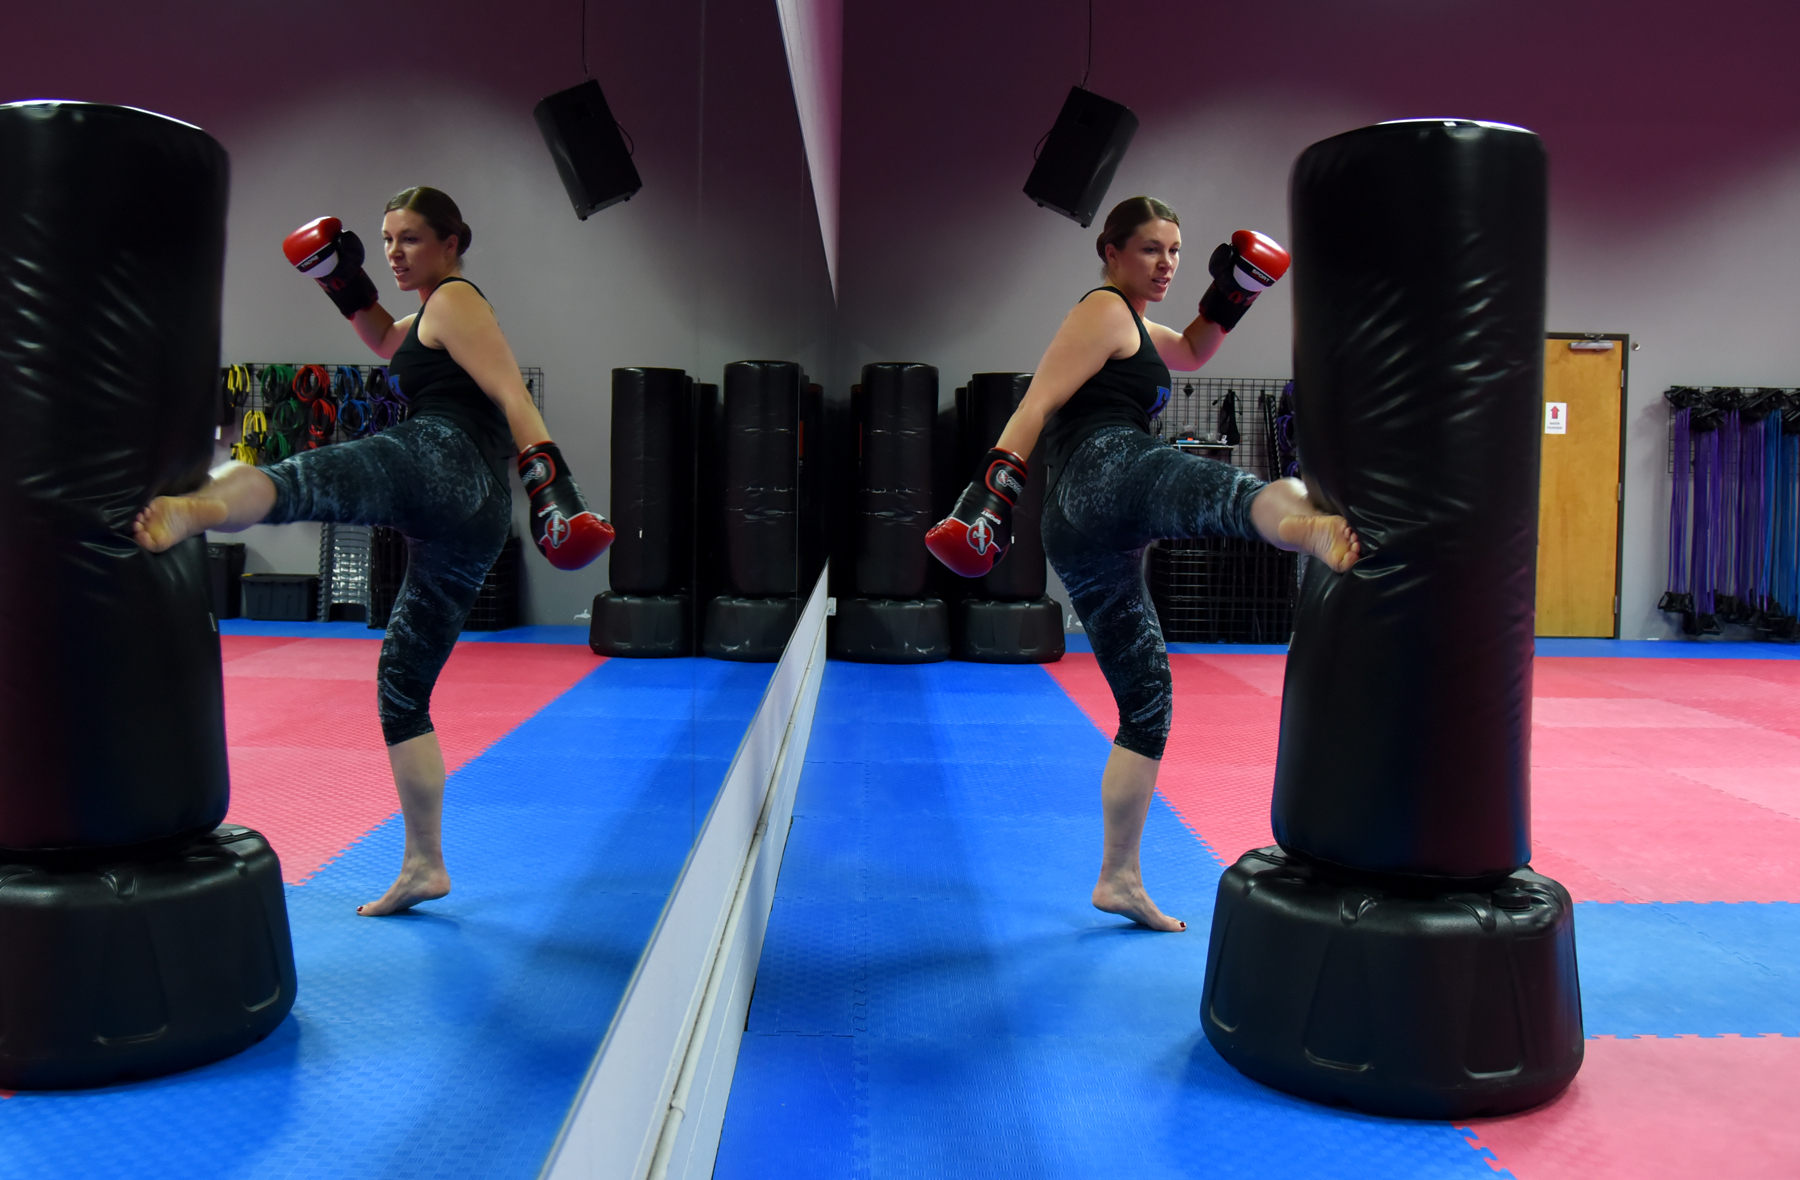 Absentee South Bay Boutique Kickboxing Studio